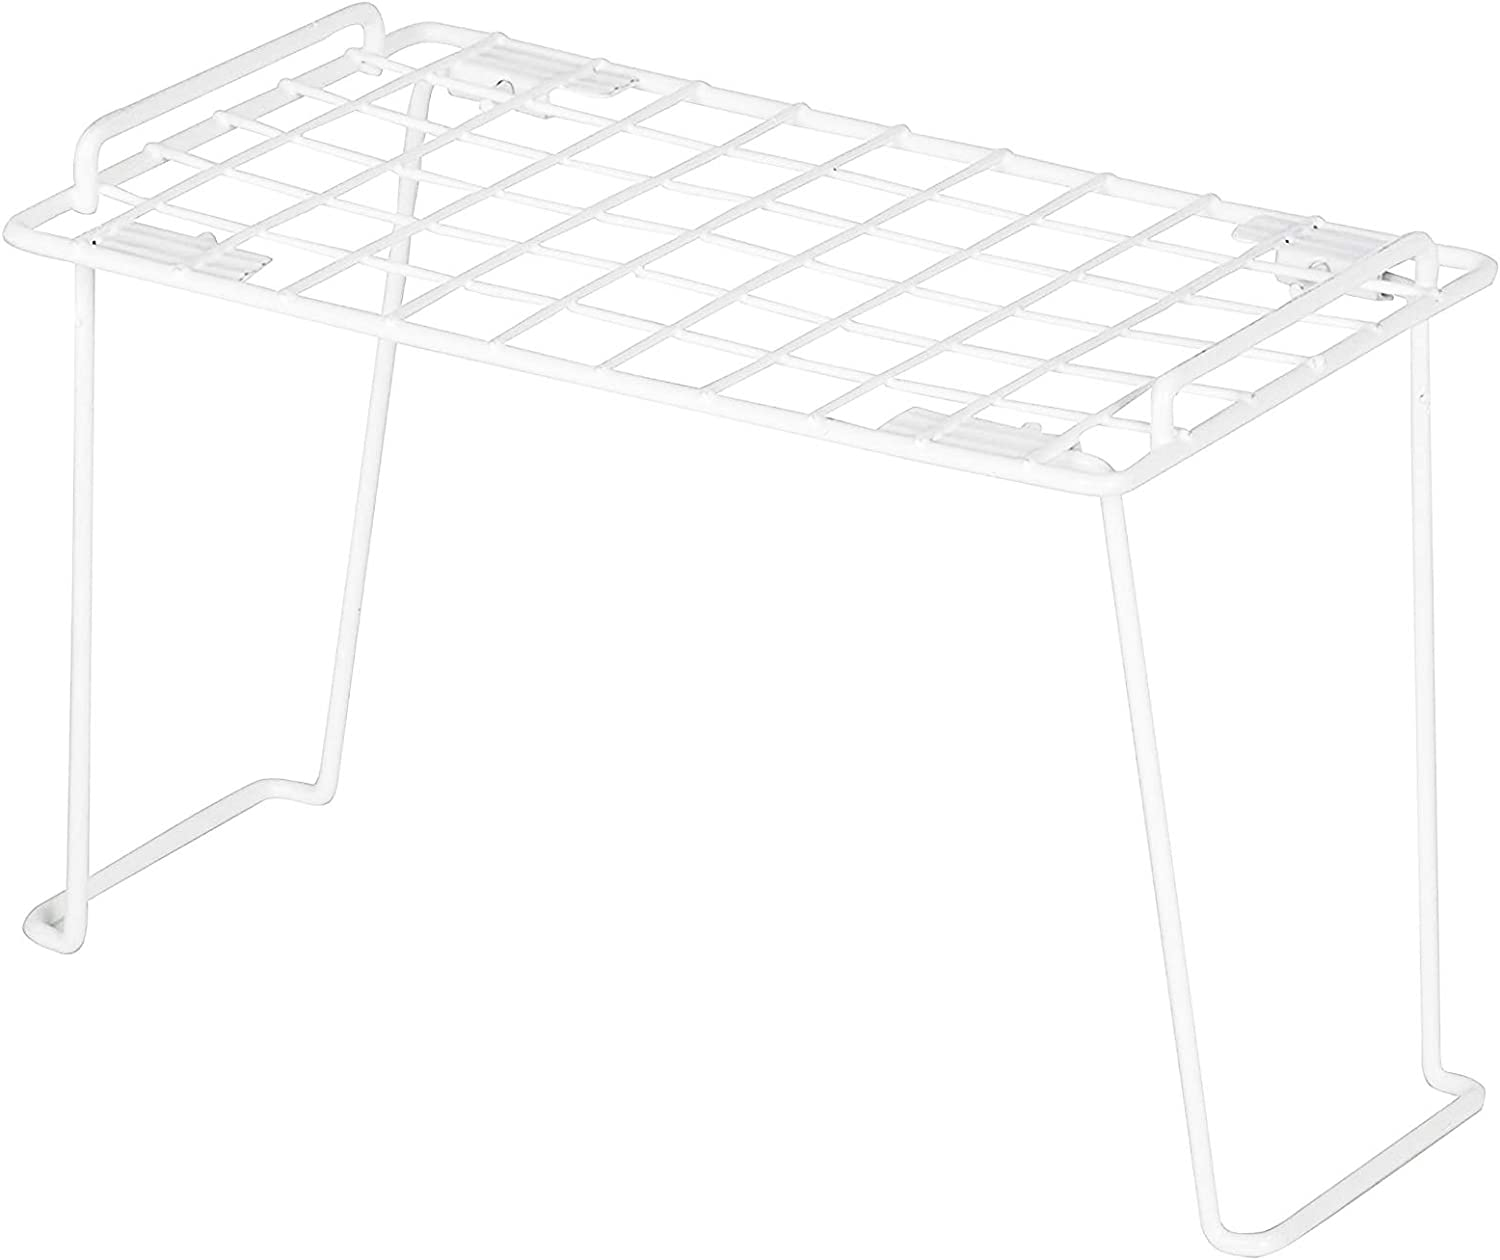 Smart Design Stacking Shelf w/Sturdy Legs - Small - Steel Wire Frame - Rust Resistant Coating - for Counter, Pantry, Shelf Organization - Kitchen (12 x 7 Inch) [White]